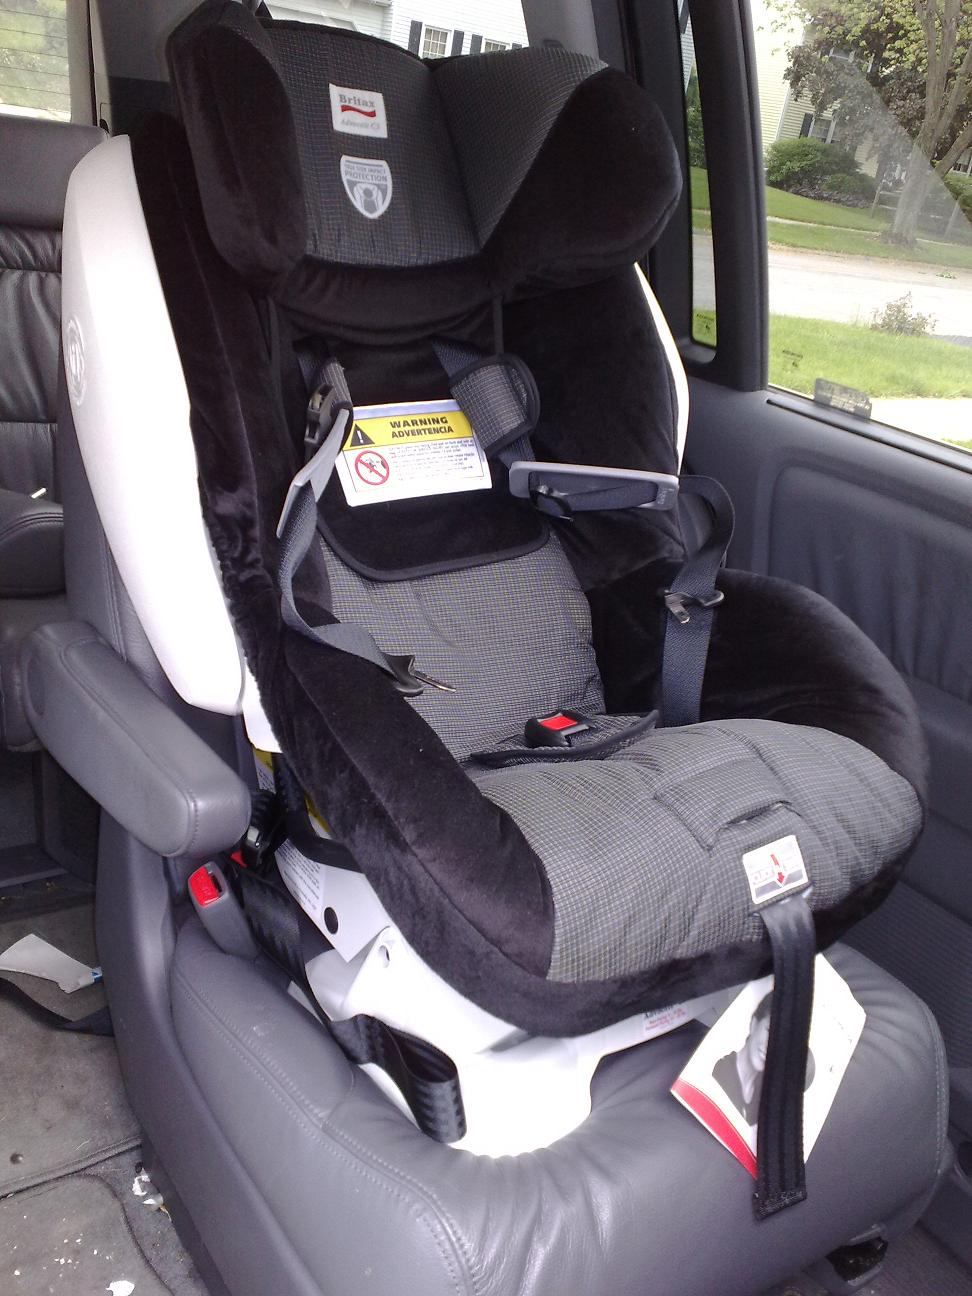 carseatblog the most trusted source for car seat reviews ratings rh carseatblog com Britax Advocate 70 CS Convertible Serene Britax Advocate CS